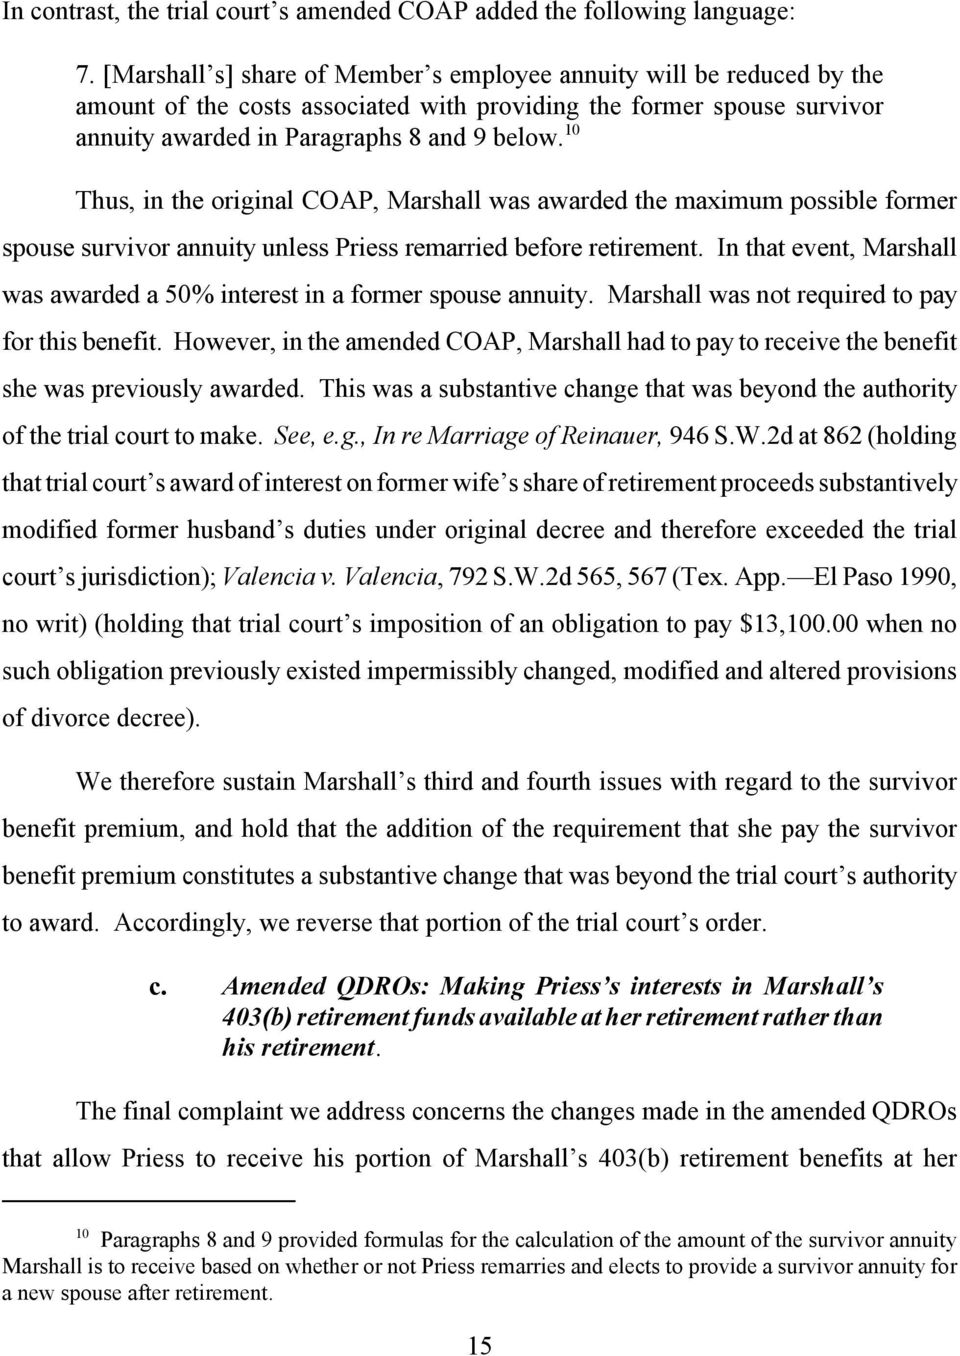 10 Thus, in the original COAP, Marshall was awarded the maximum possible former spouse survivor annuity unless Priess remarried before retirement.